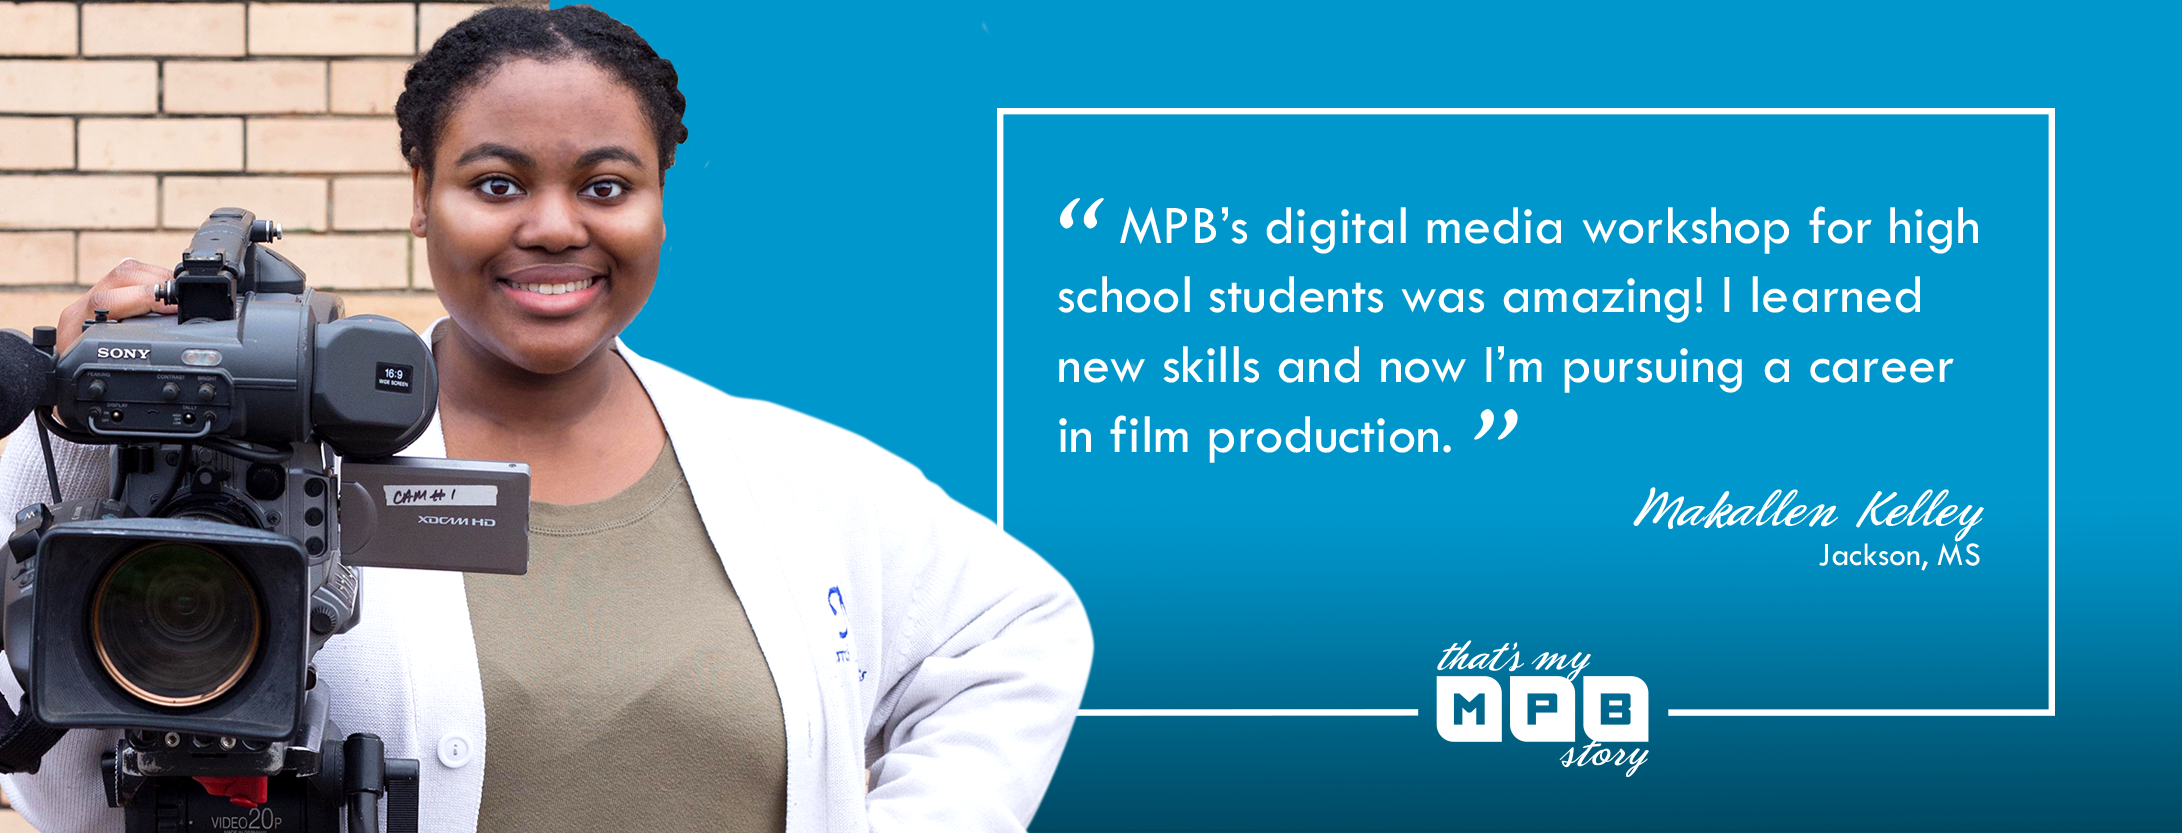 """MPB's digital media workshop for high school students was amazing! I learned new skills and now I'm pursuing a career in film production."" – Makallen Kelley, Jackson, MS"